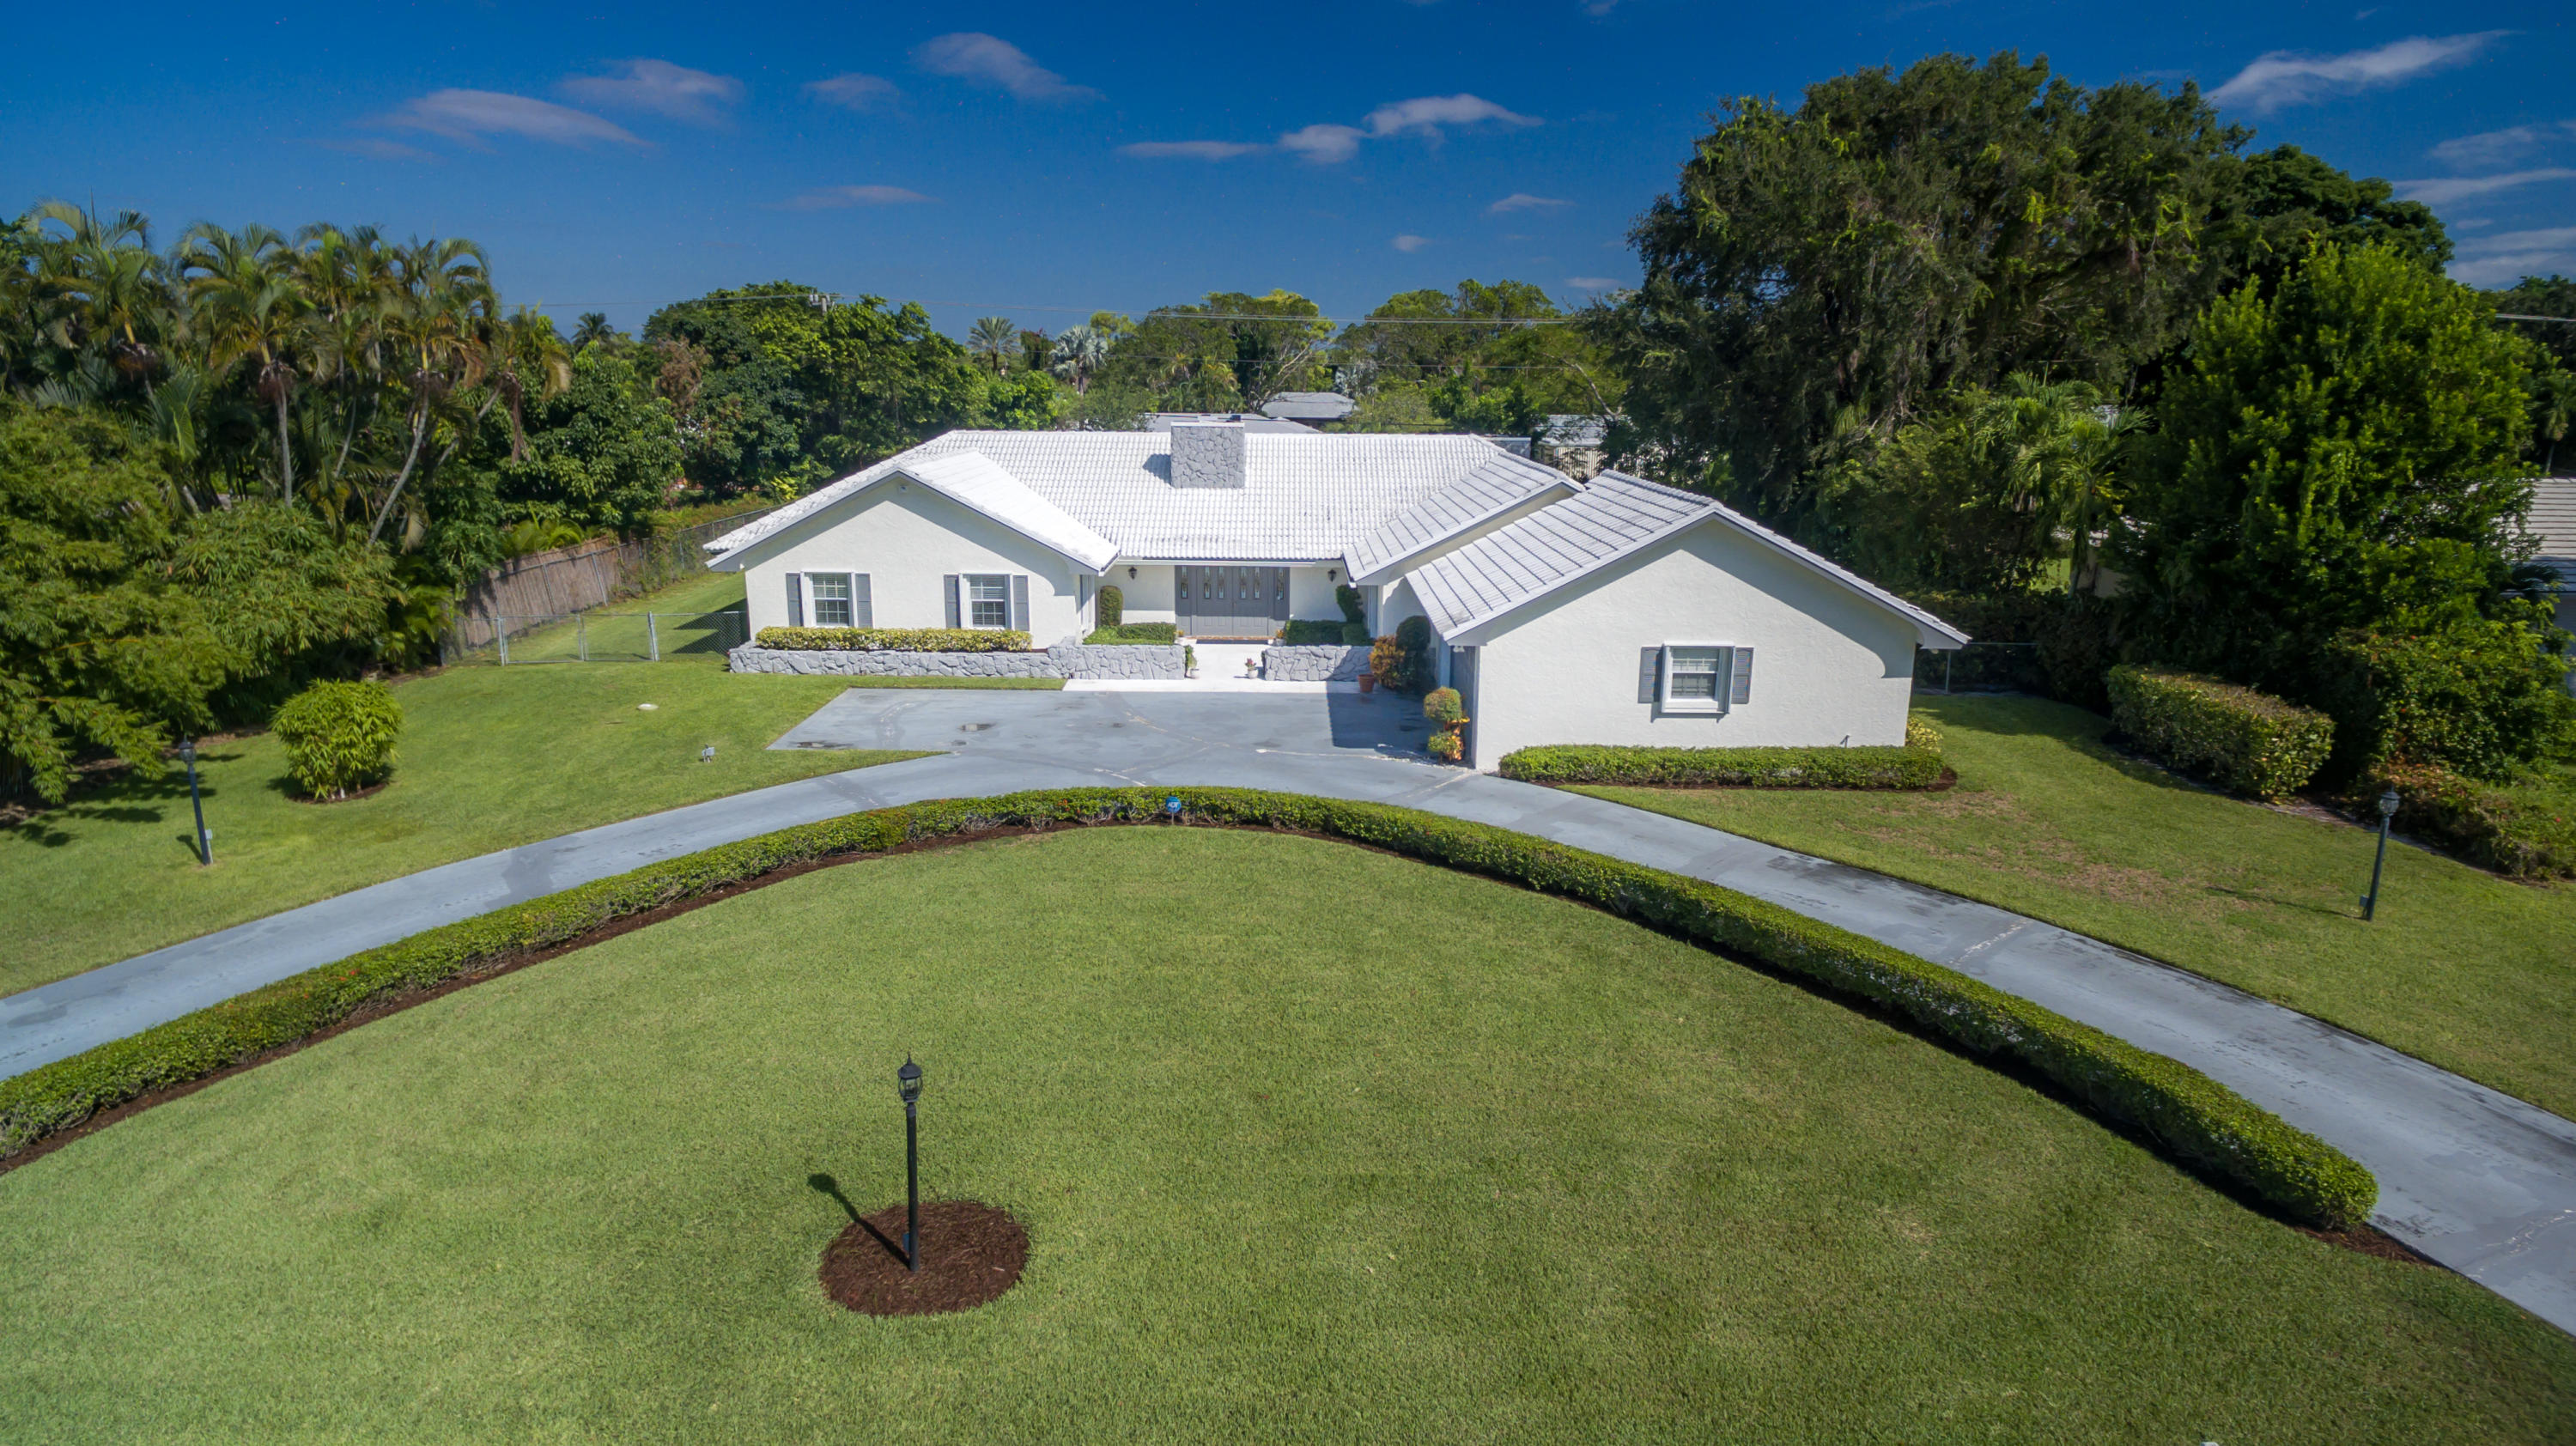 Home for sale in Sherwood Park Delray Beach Florida